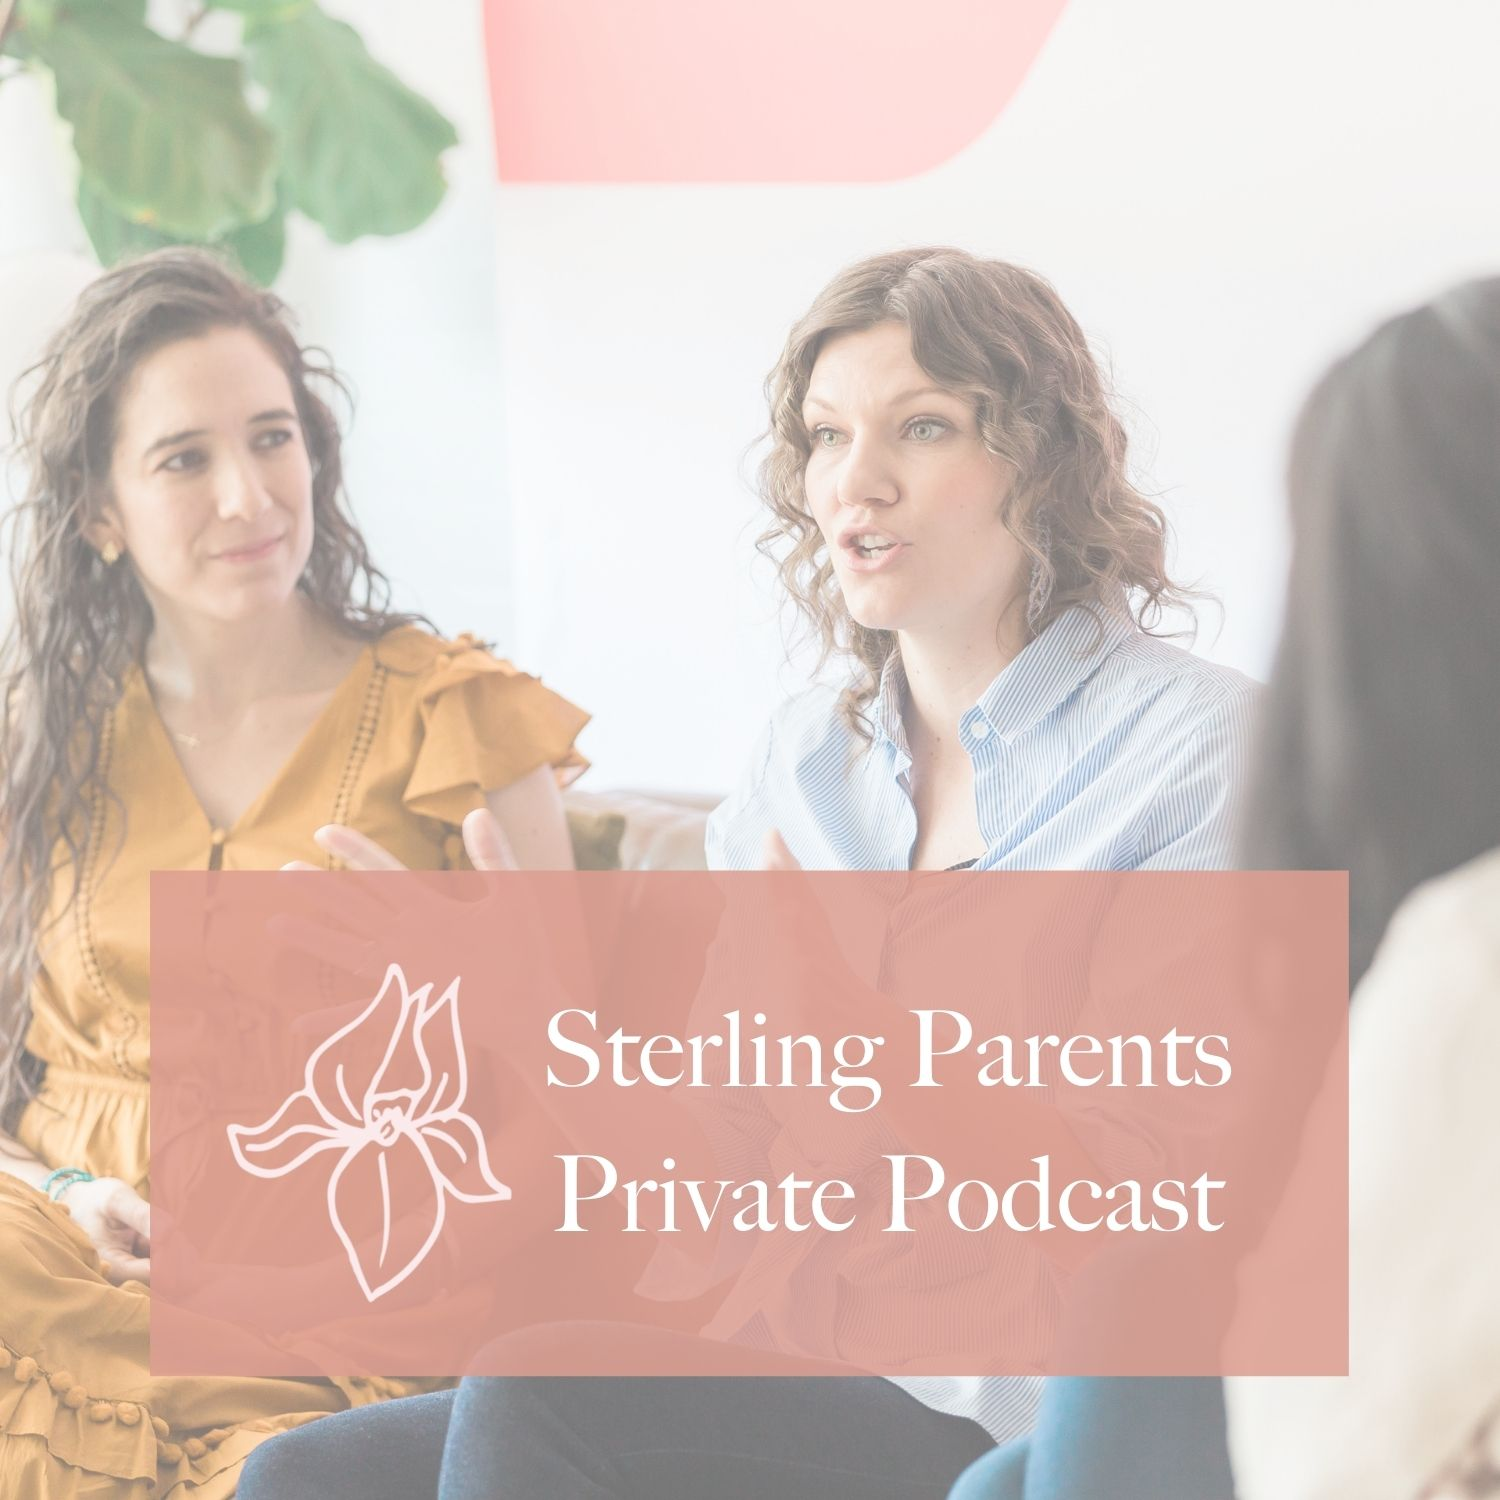 Artwork for podcast Sterling Parents Private Podcast